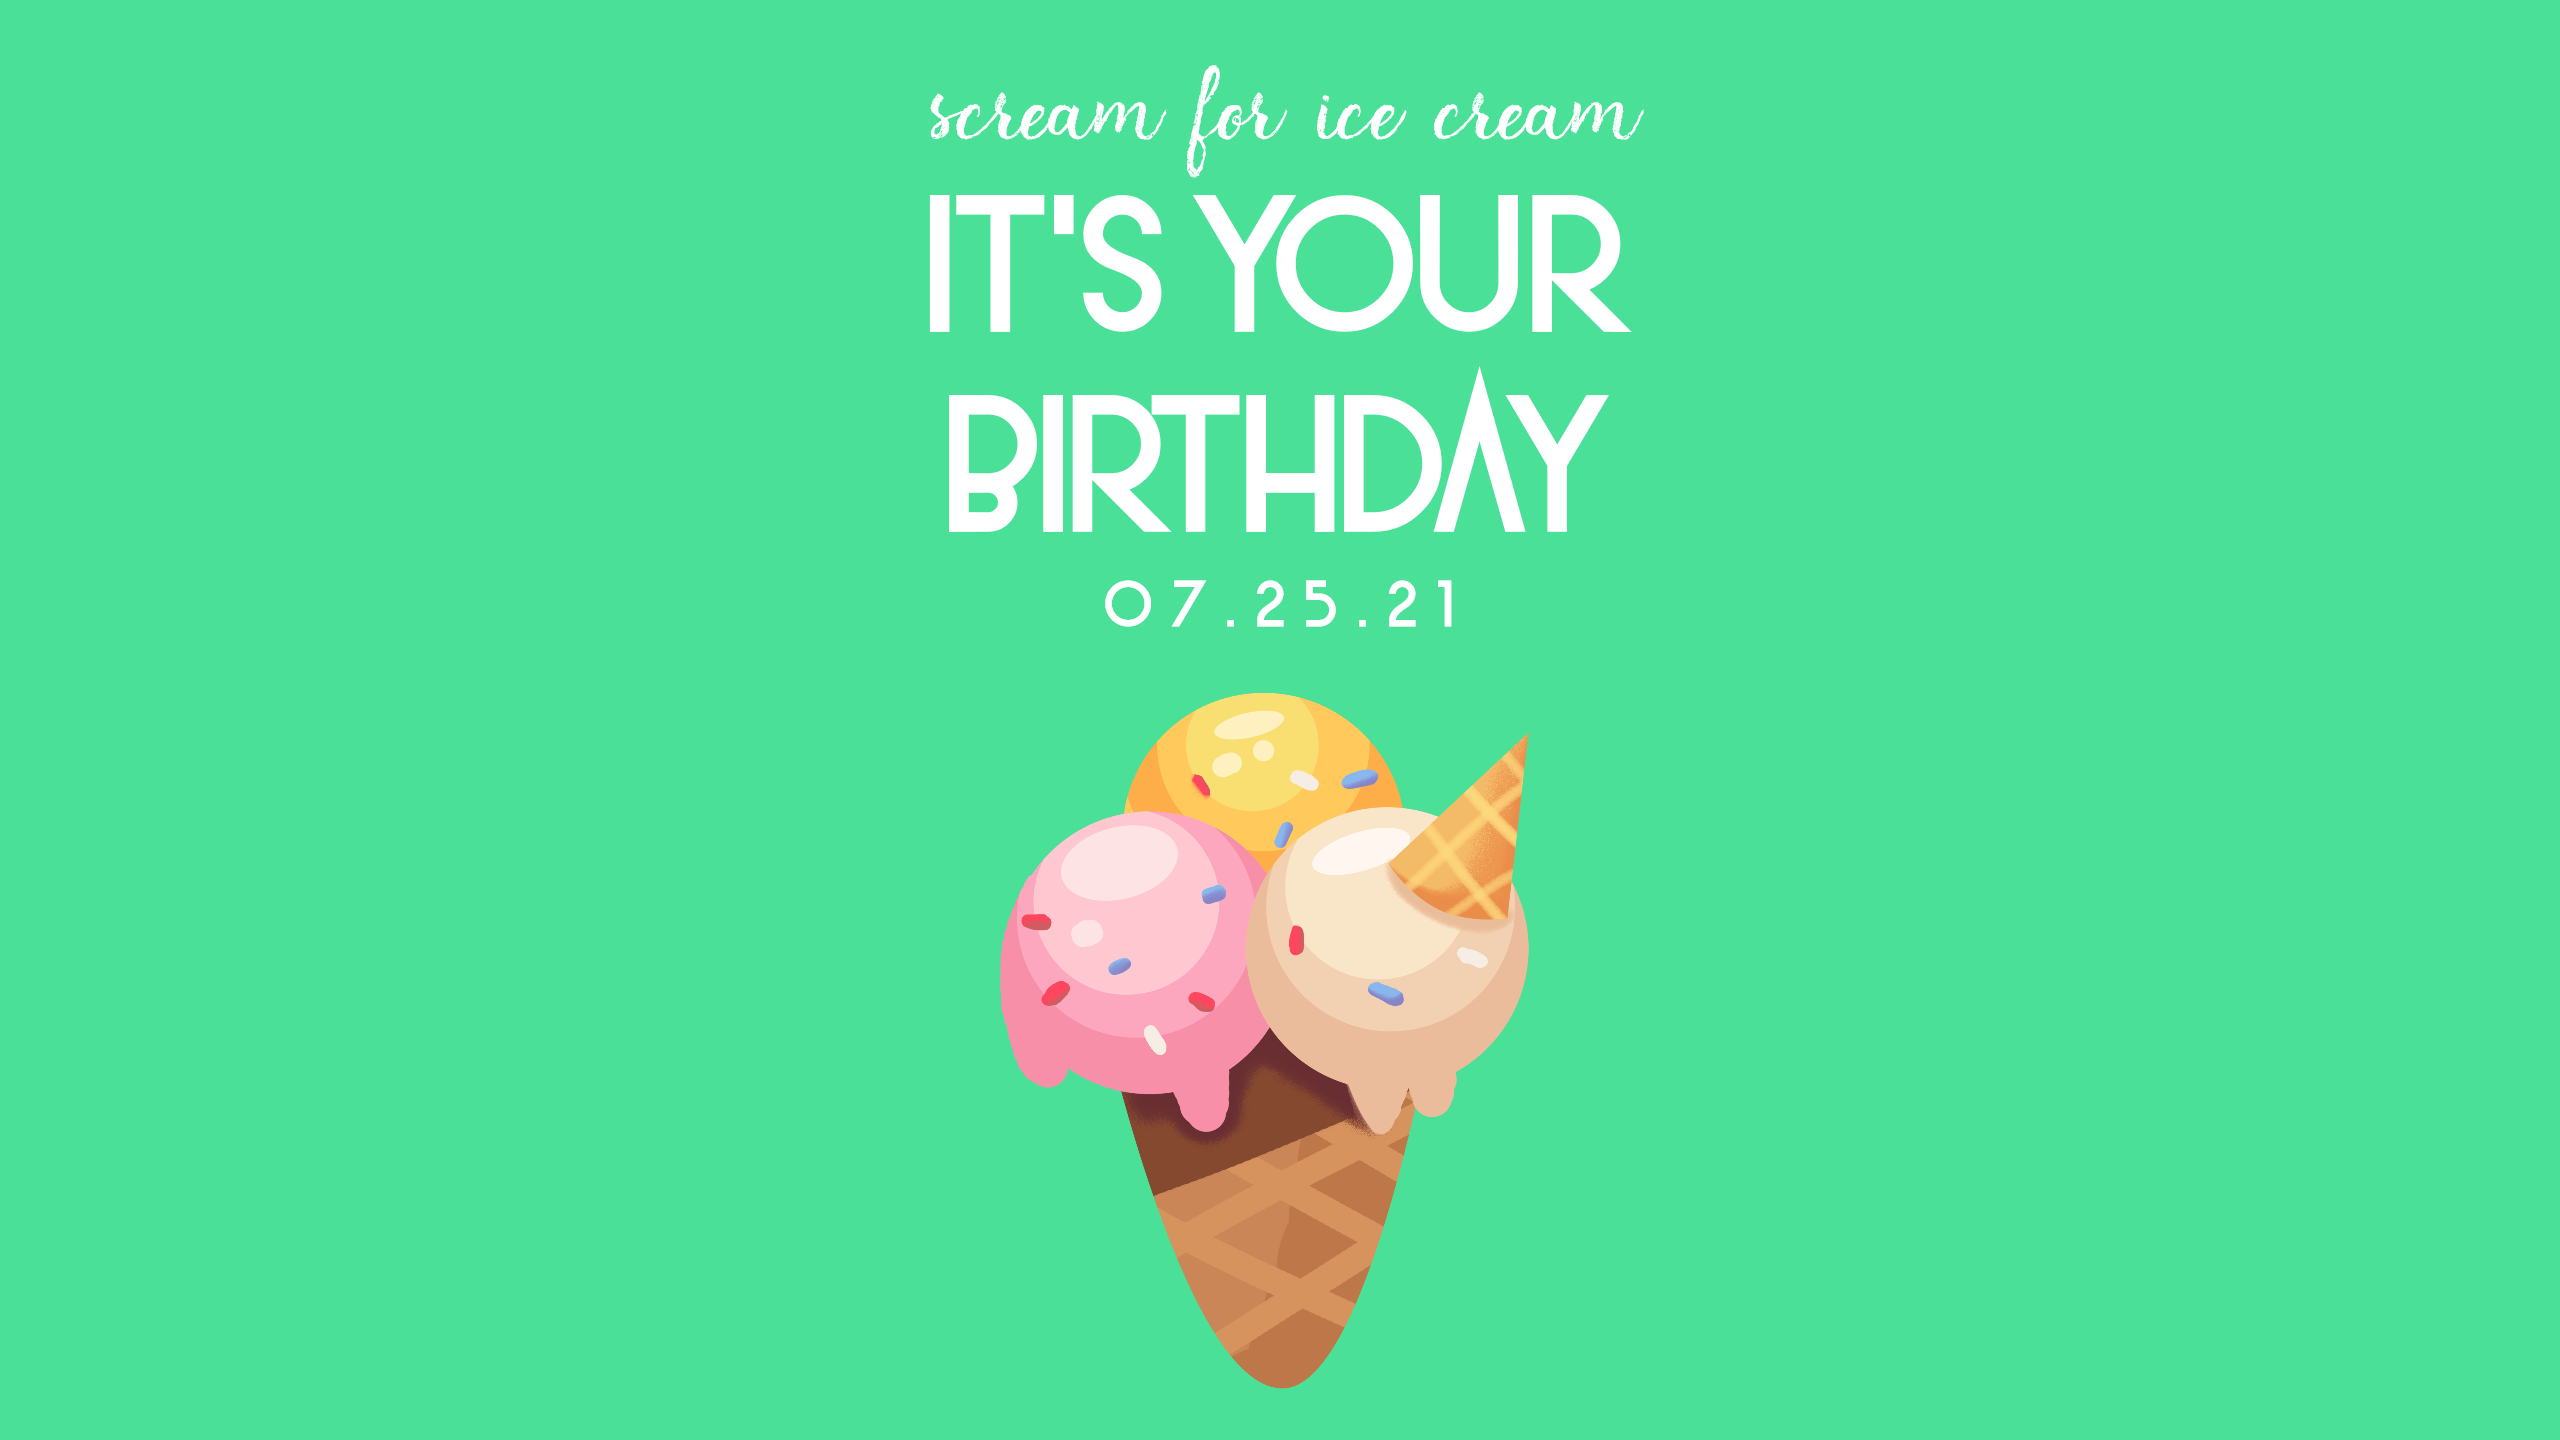 Scream for Ice Cream 0 Editable Design  Template